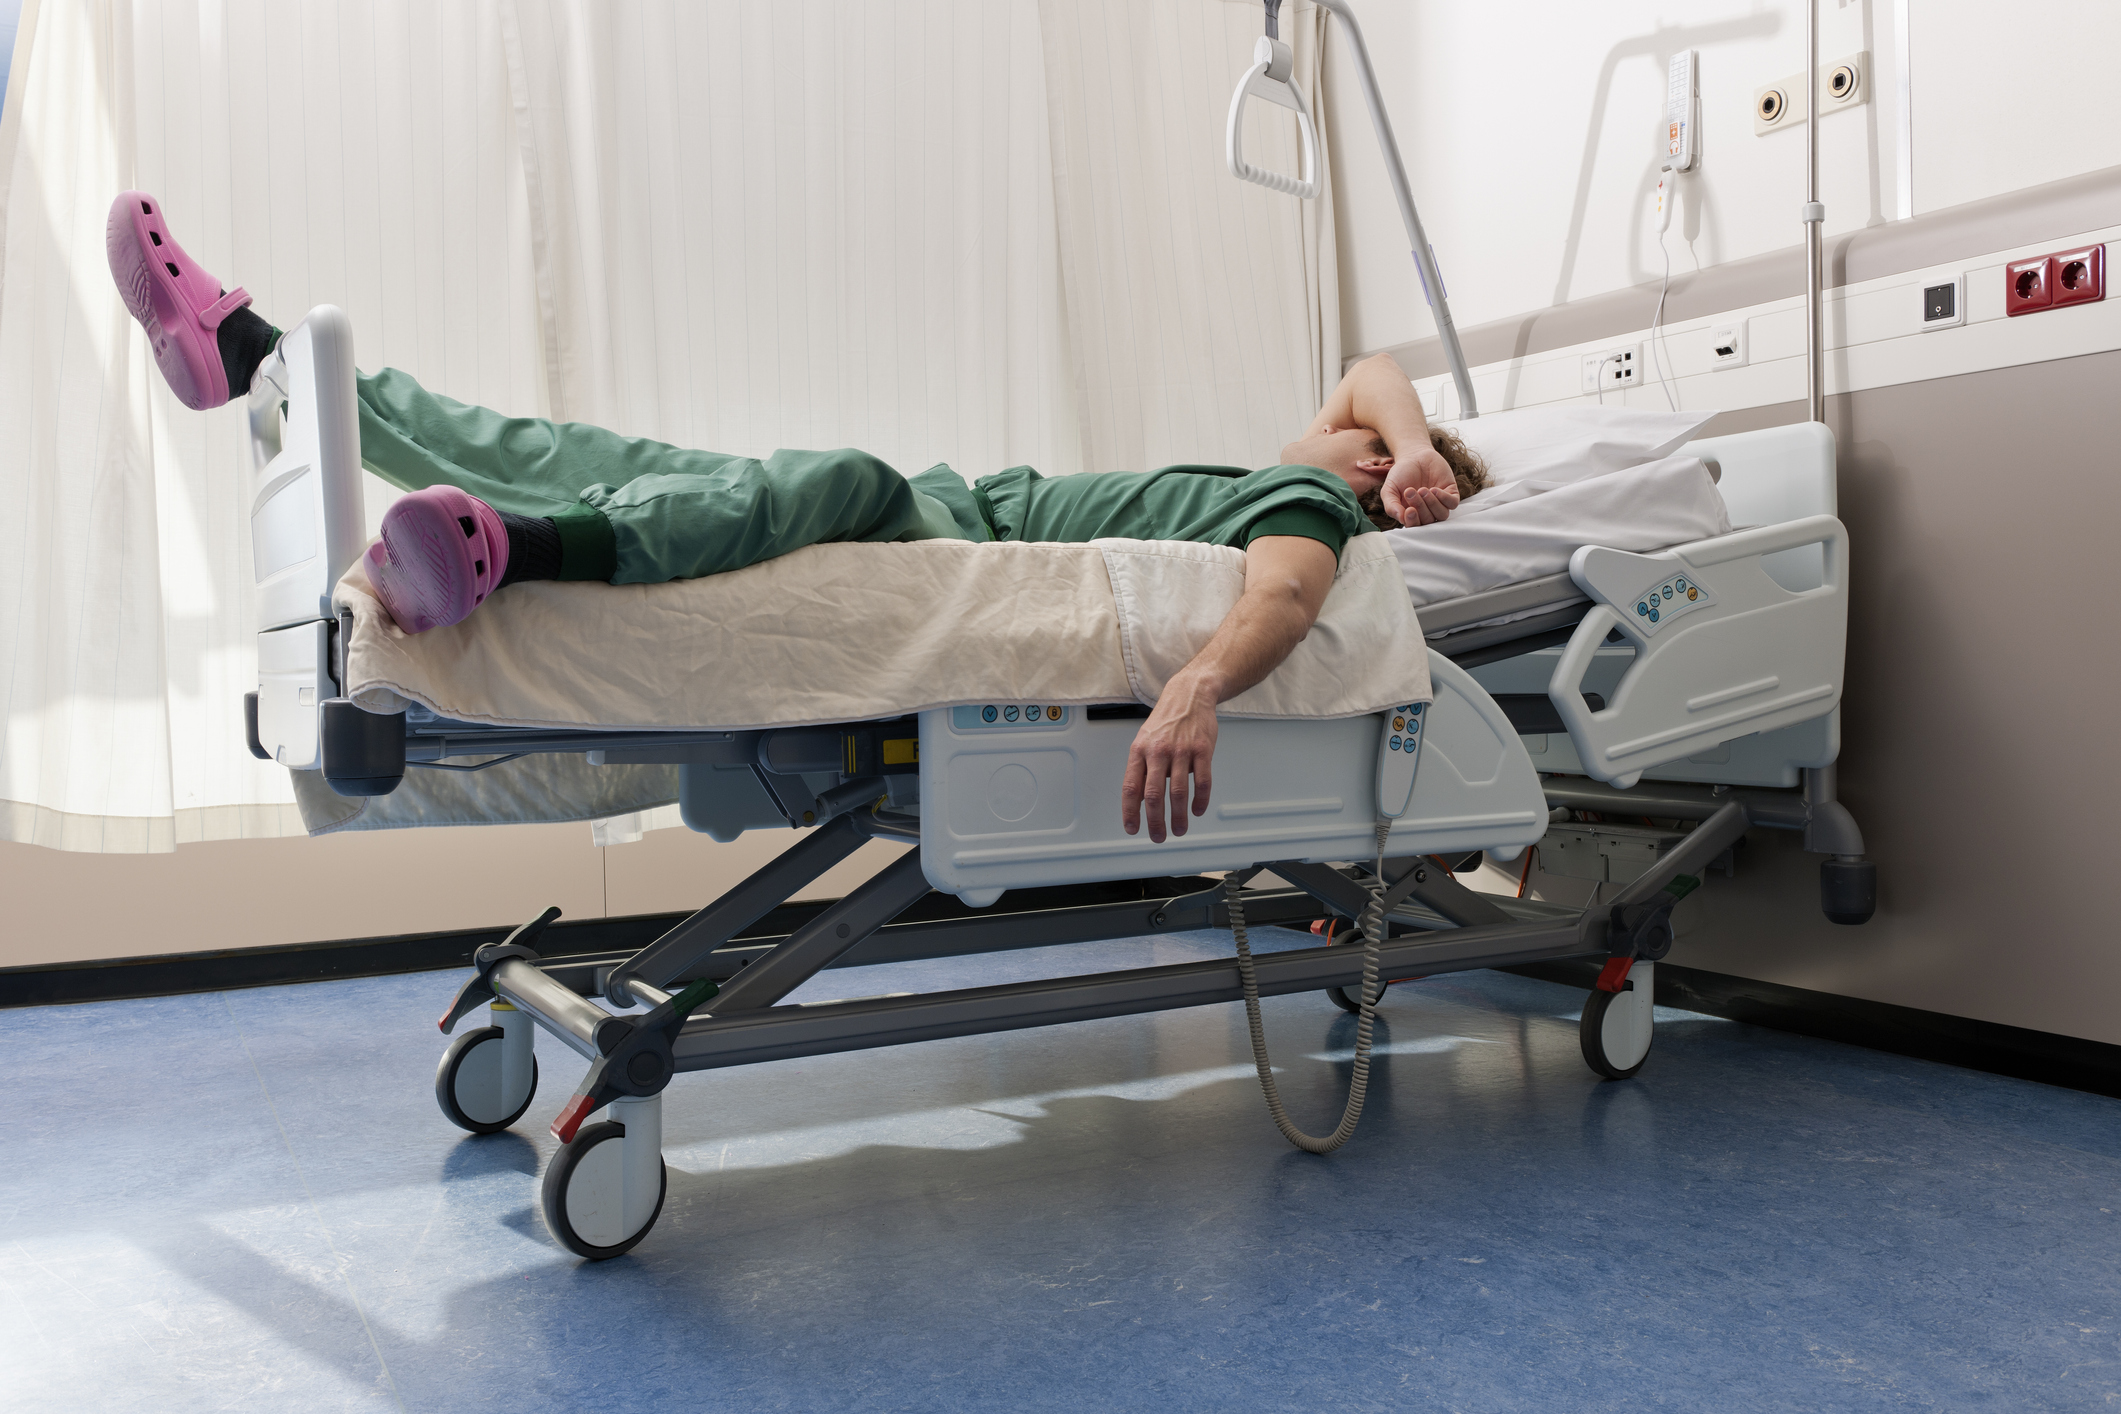 Exhausted healthcare worker lying on hospital bed for nap